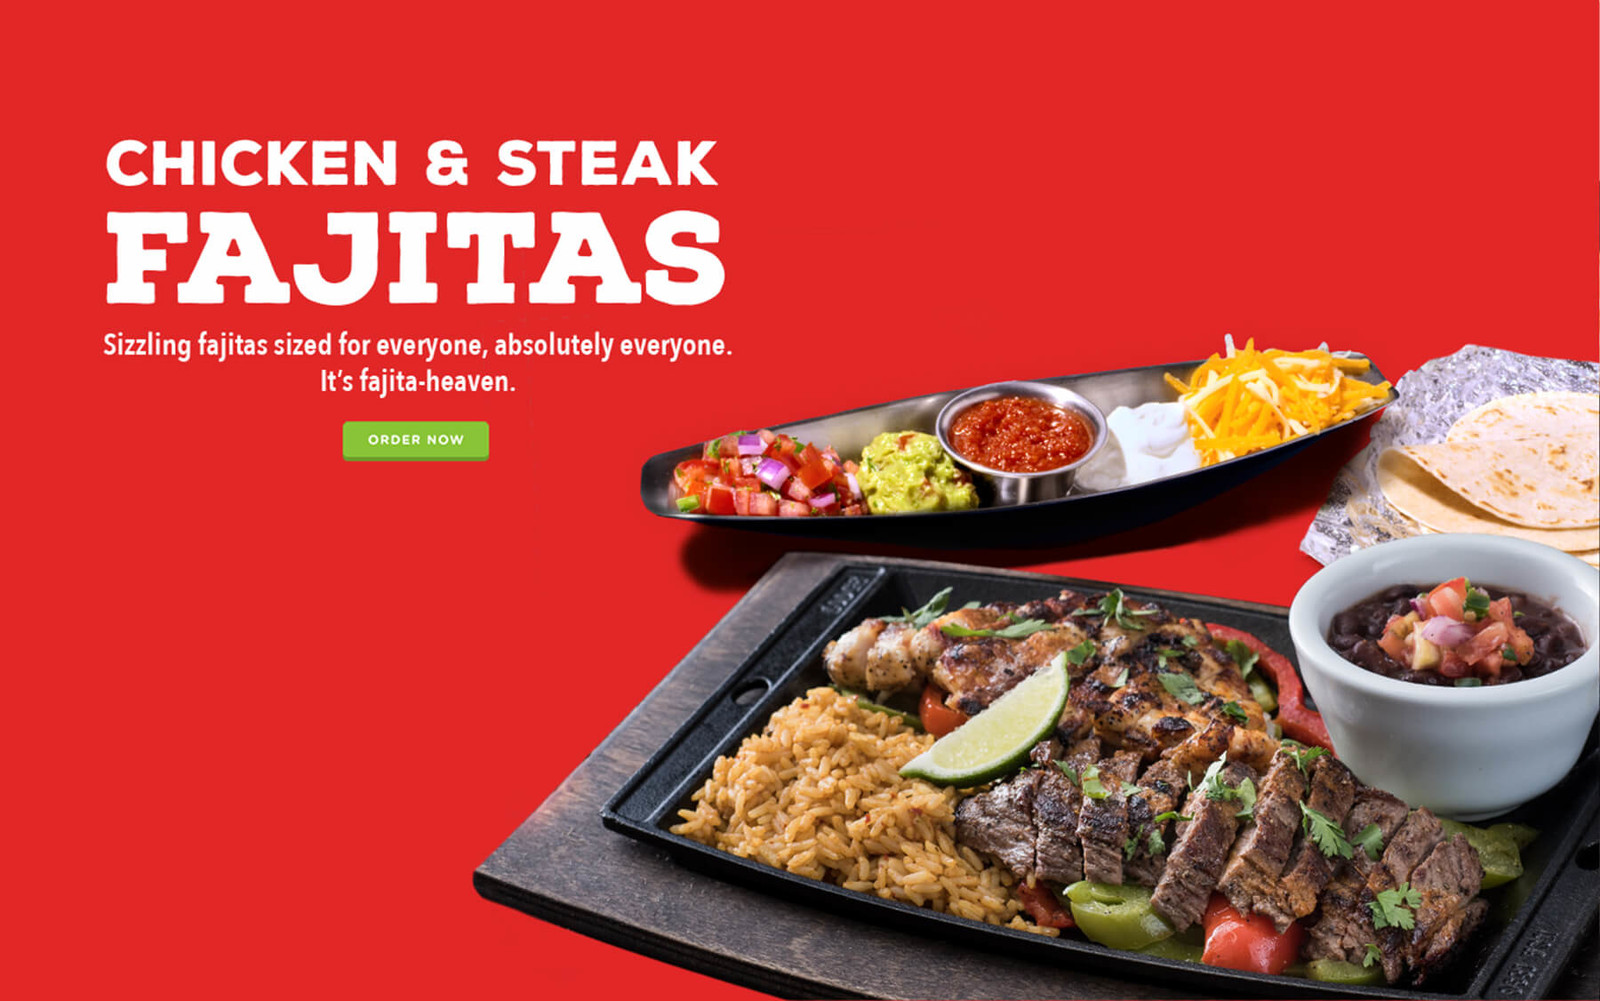 Chicken, Steak & Shrimp Fajitas - Sizzling fajitas for everyone at Chili's. It's fajita-heaven!.